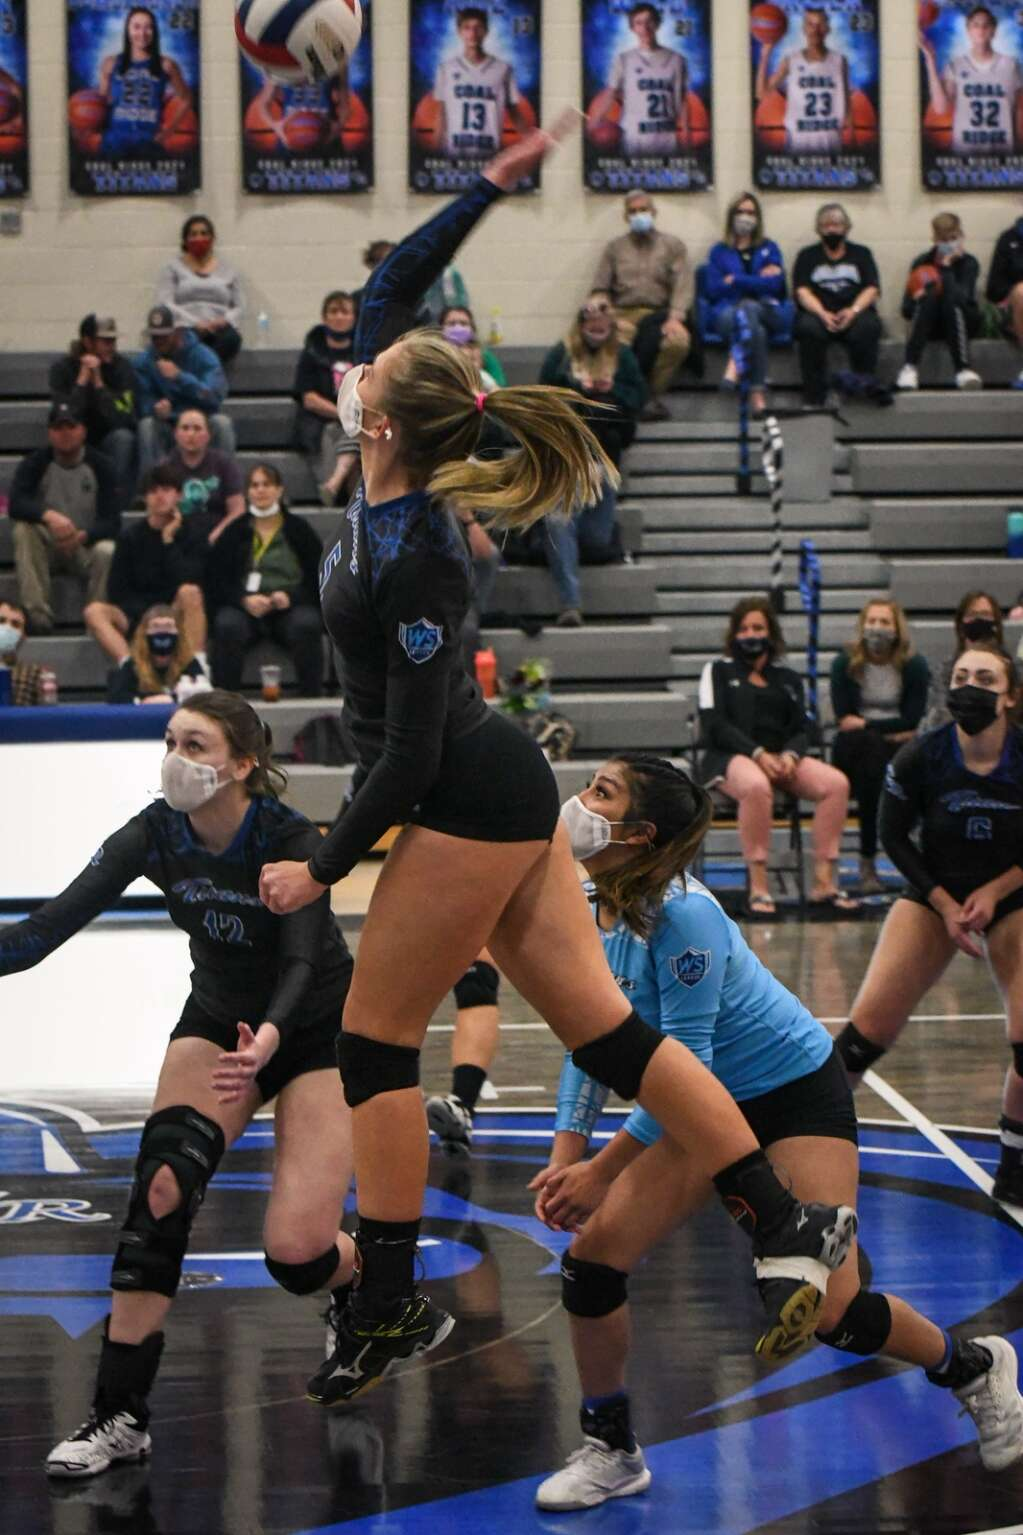 Coal Ridge Titan Brecken Guccini jumps up to spike the ball during Tuesday night's game against the Rifle Bears. |Chelsea Self / Post Independent